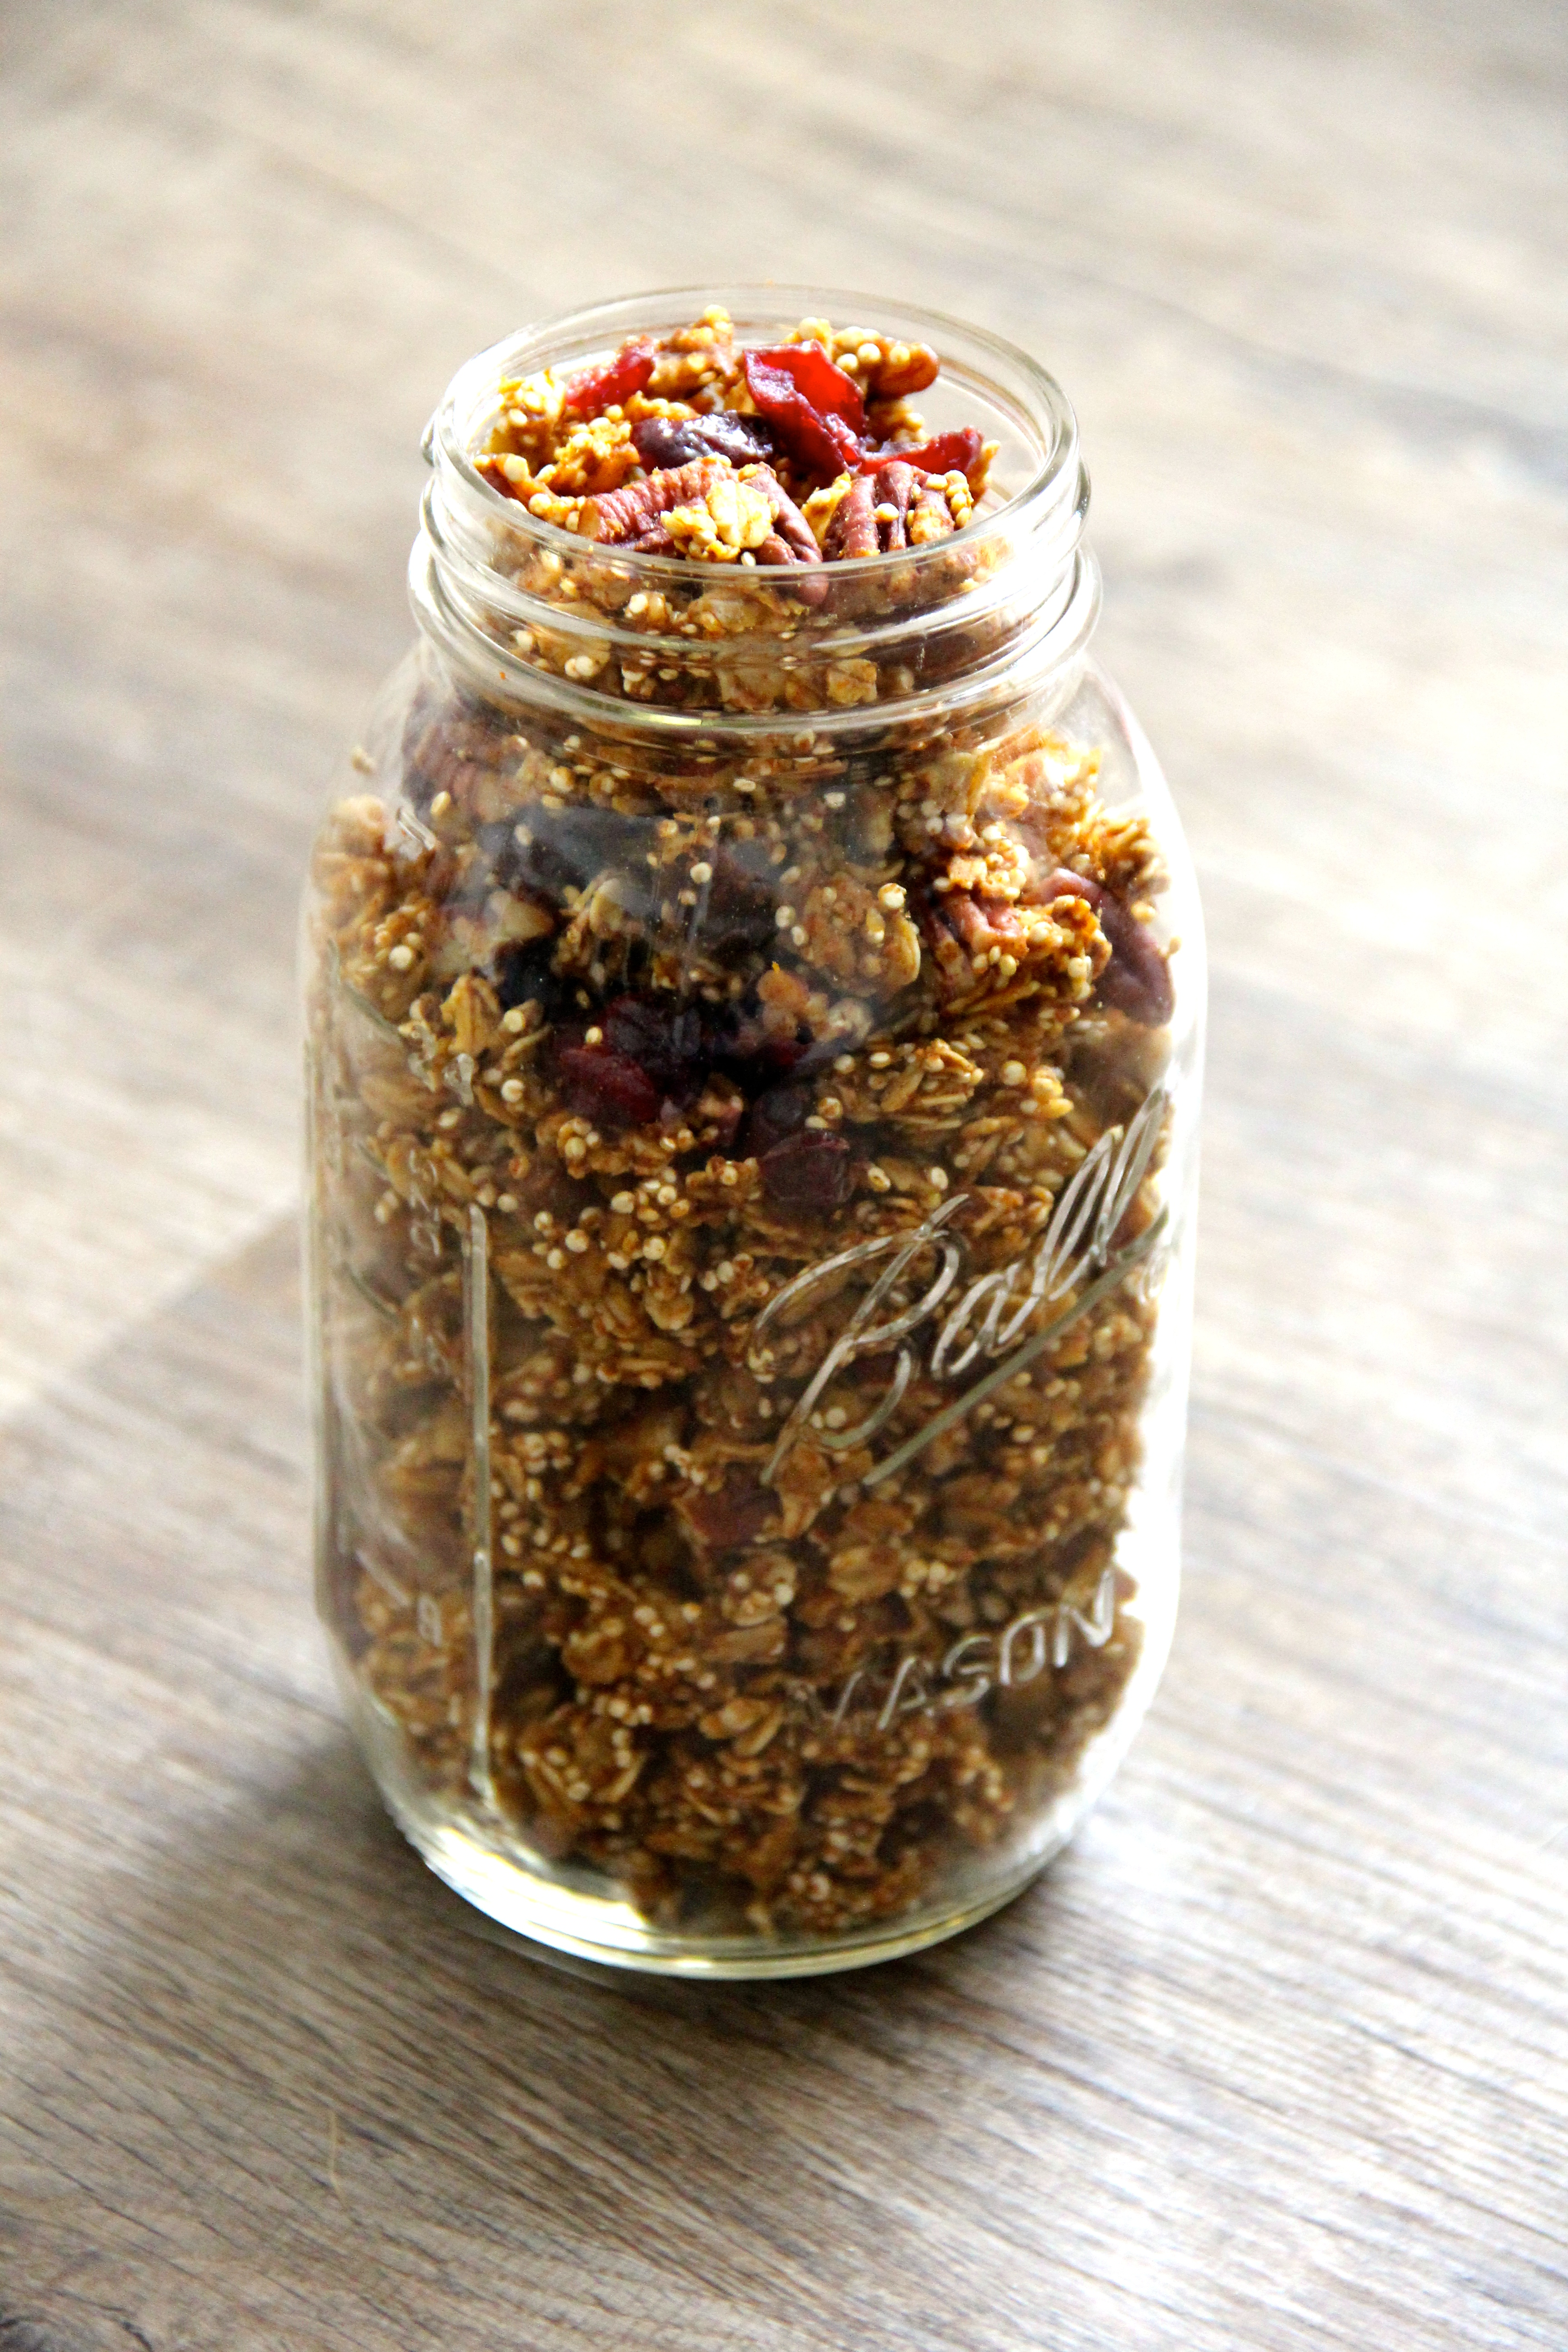 Happy (almost!) Autumn! I hope you love this granola as much as I do!